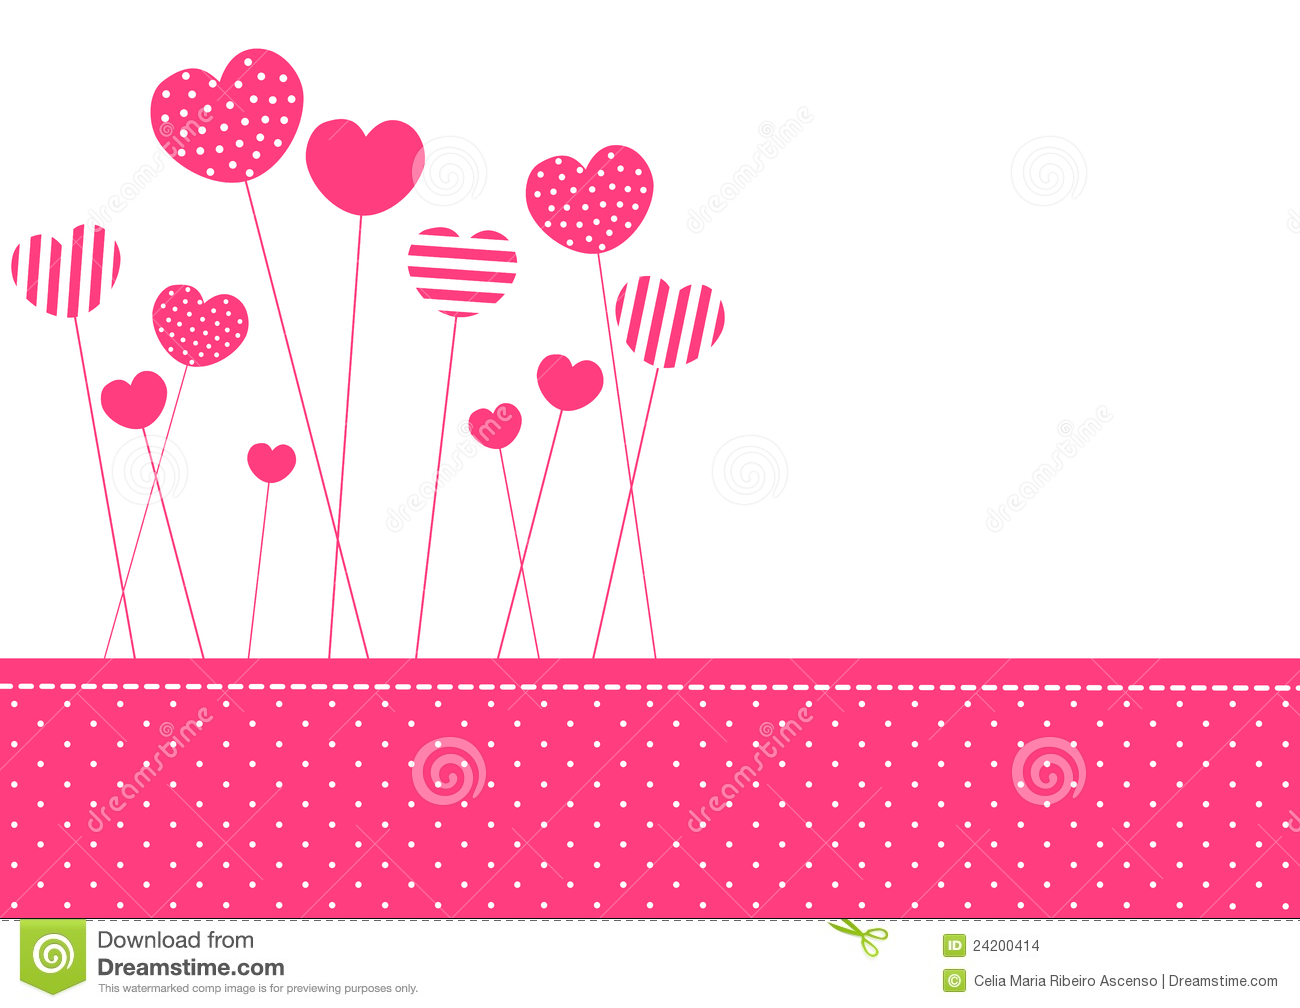 Pink patterned hearts invitation card